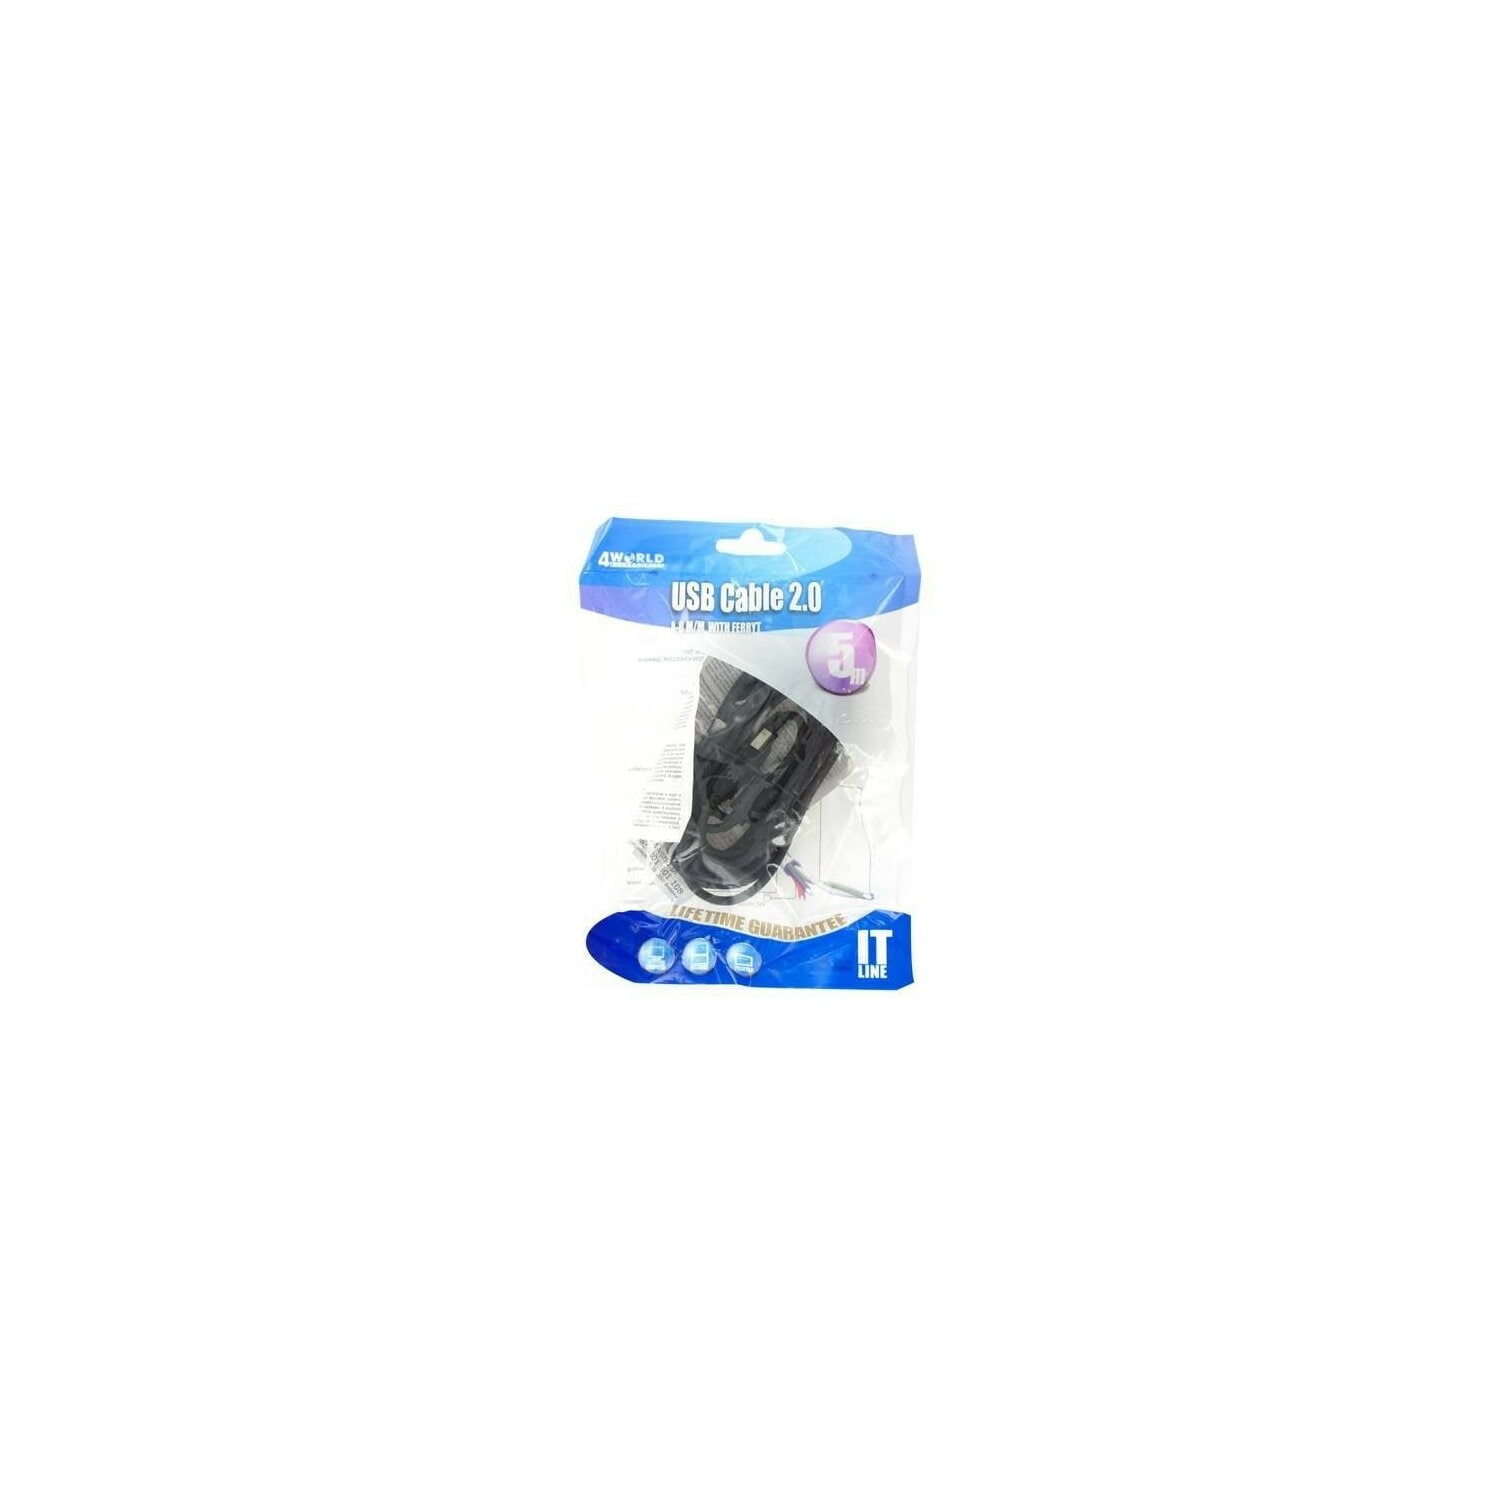 Kabel 4WORLD USB 2.0 A-B 5m